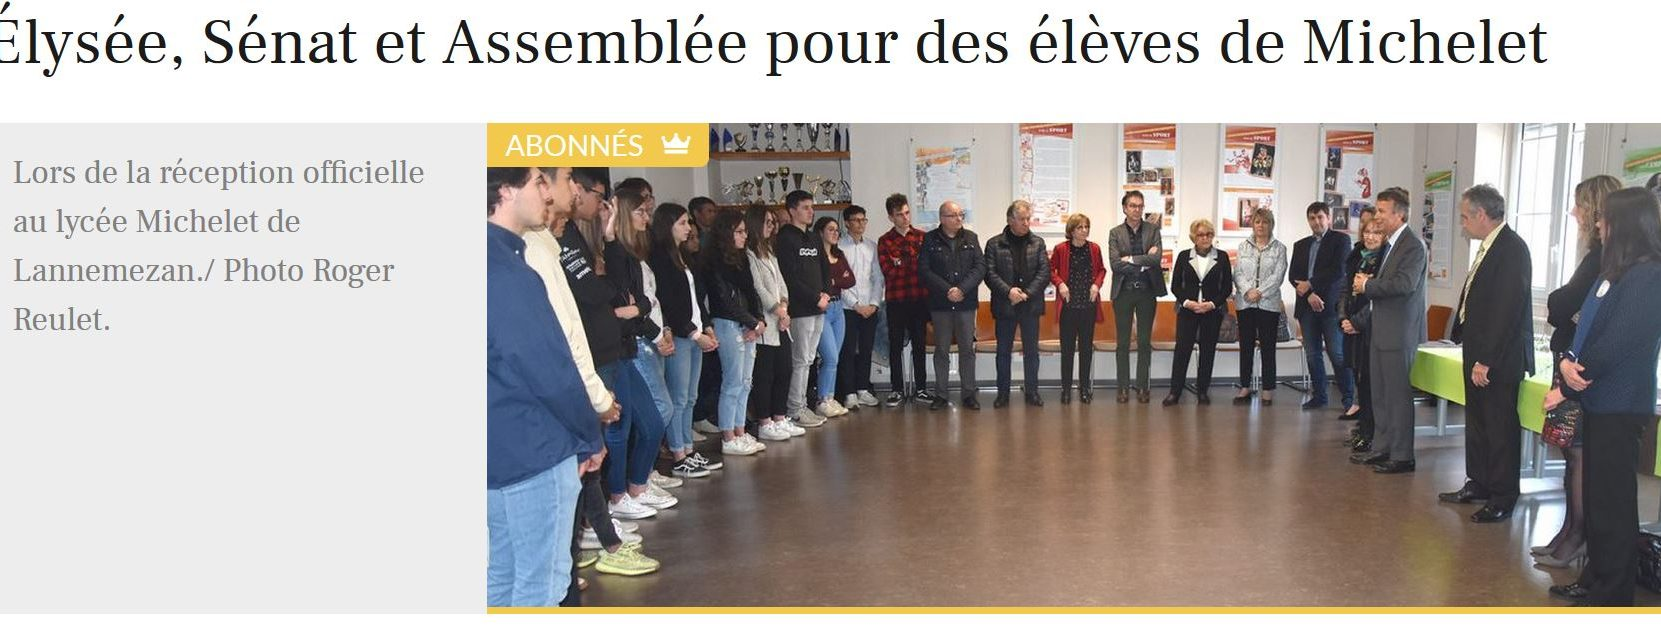 article elysée 1.JPG